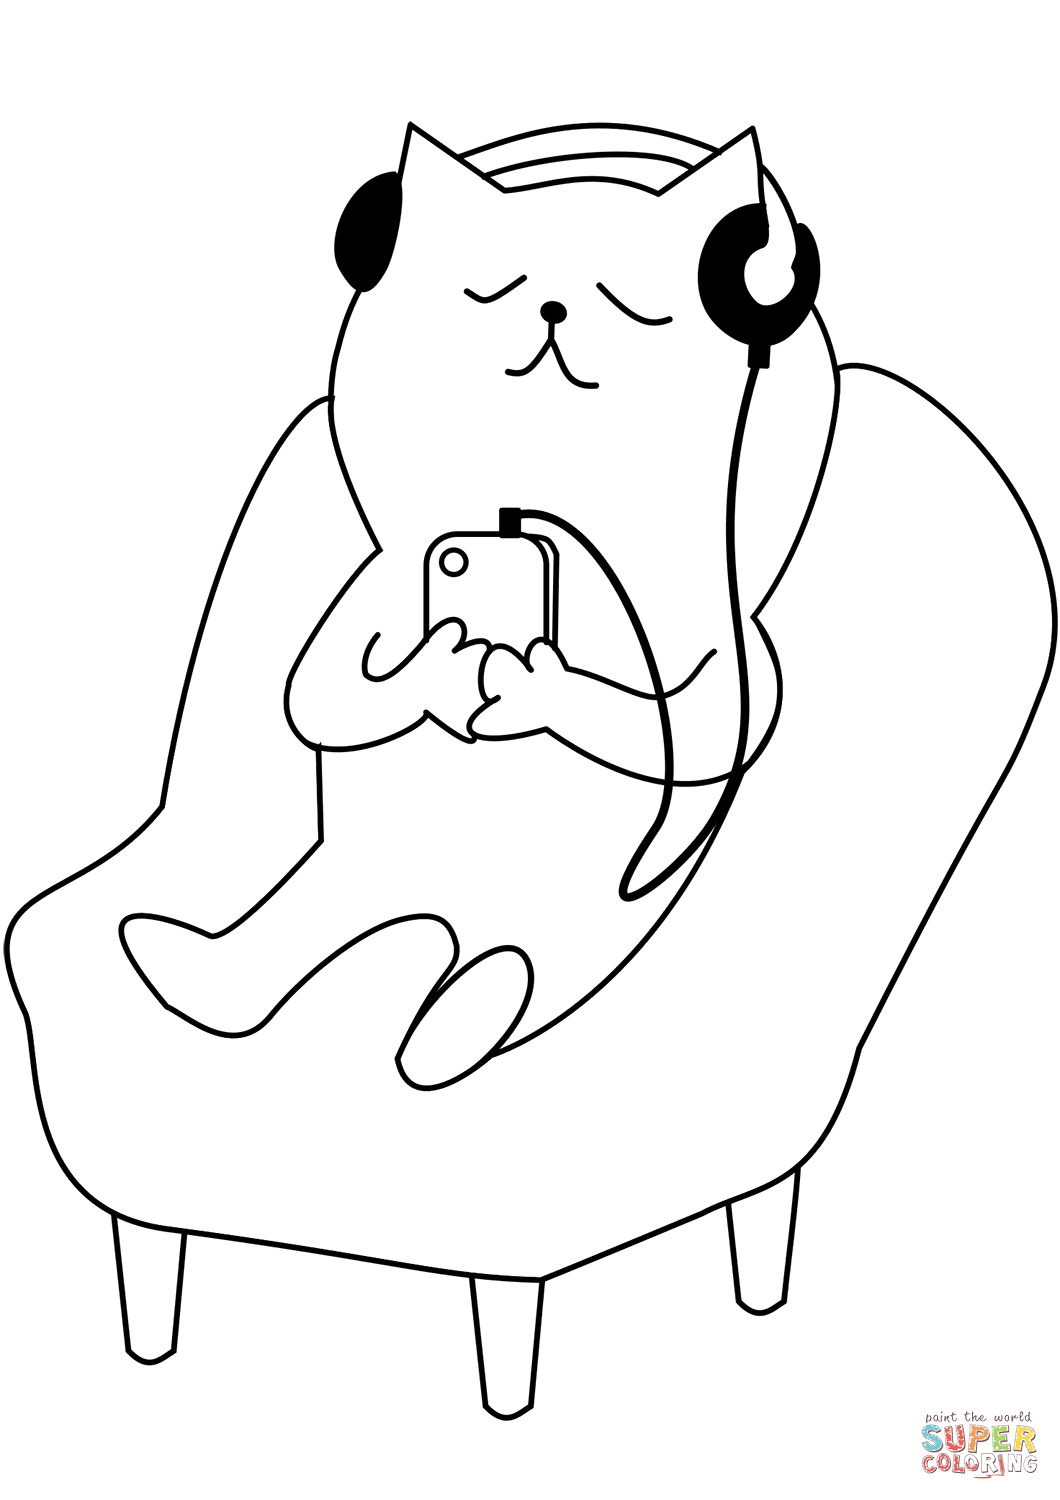 Cat Listening To Music Coloring Page